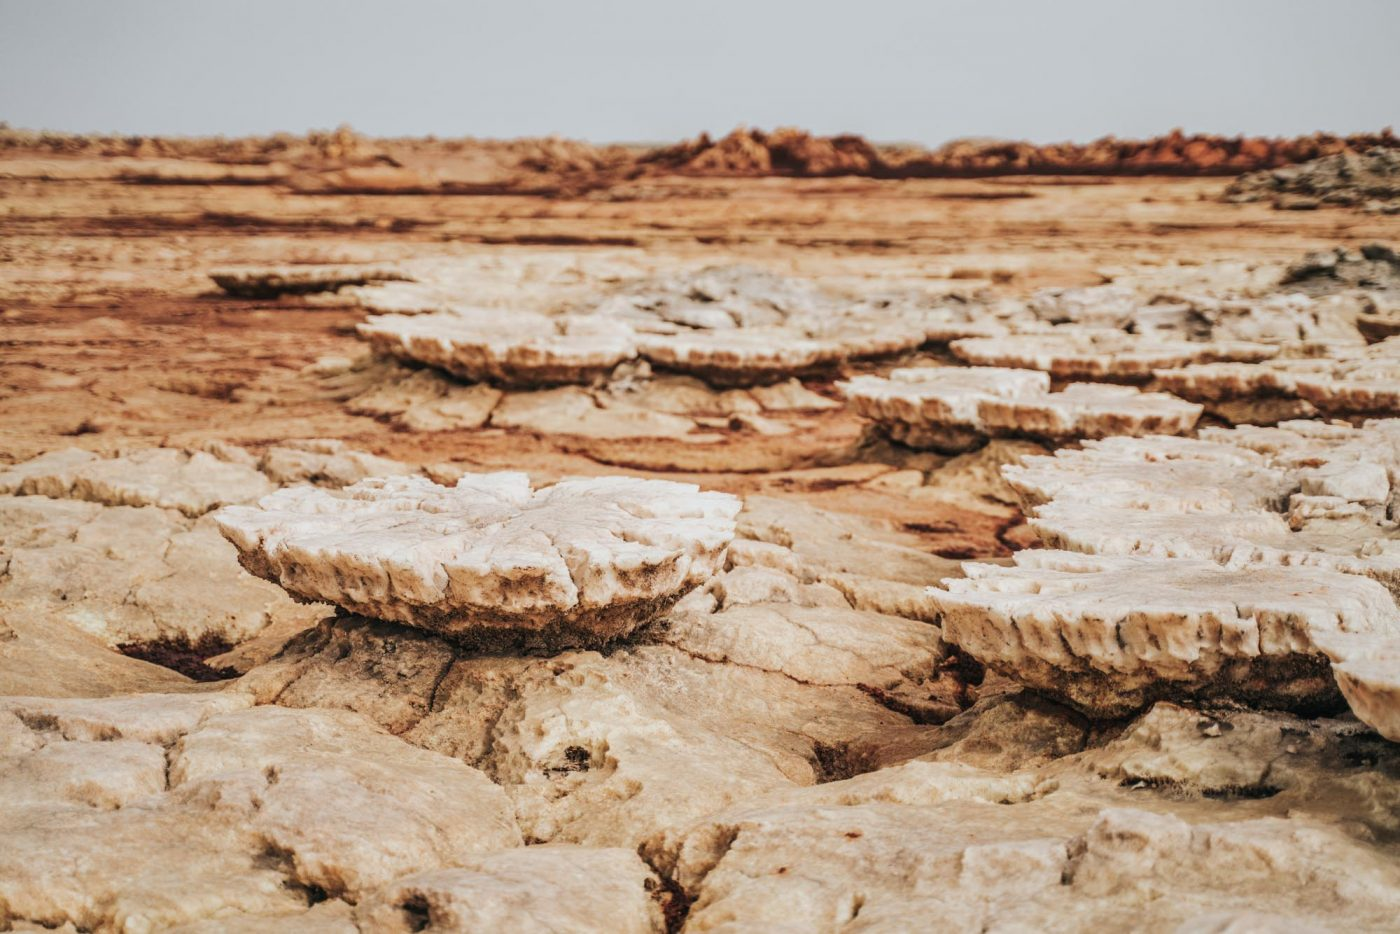 Danakil Depression driest place on earth